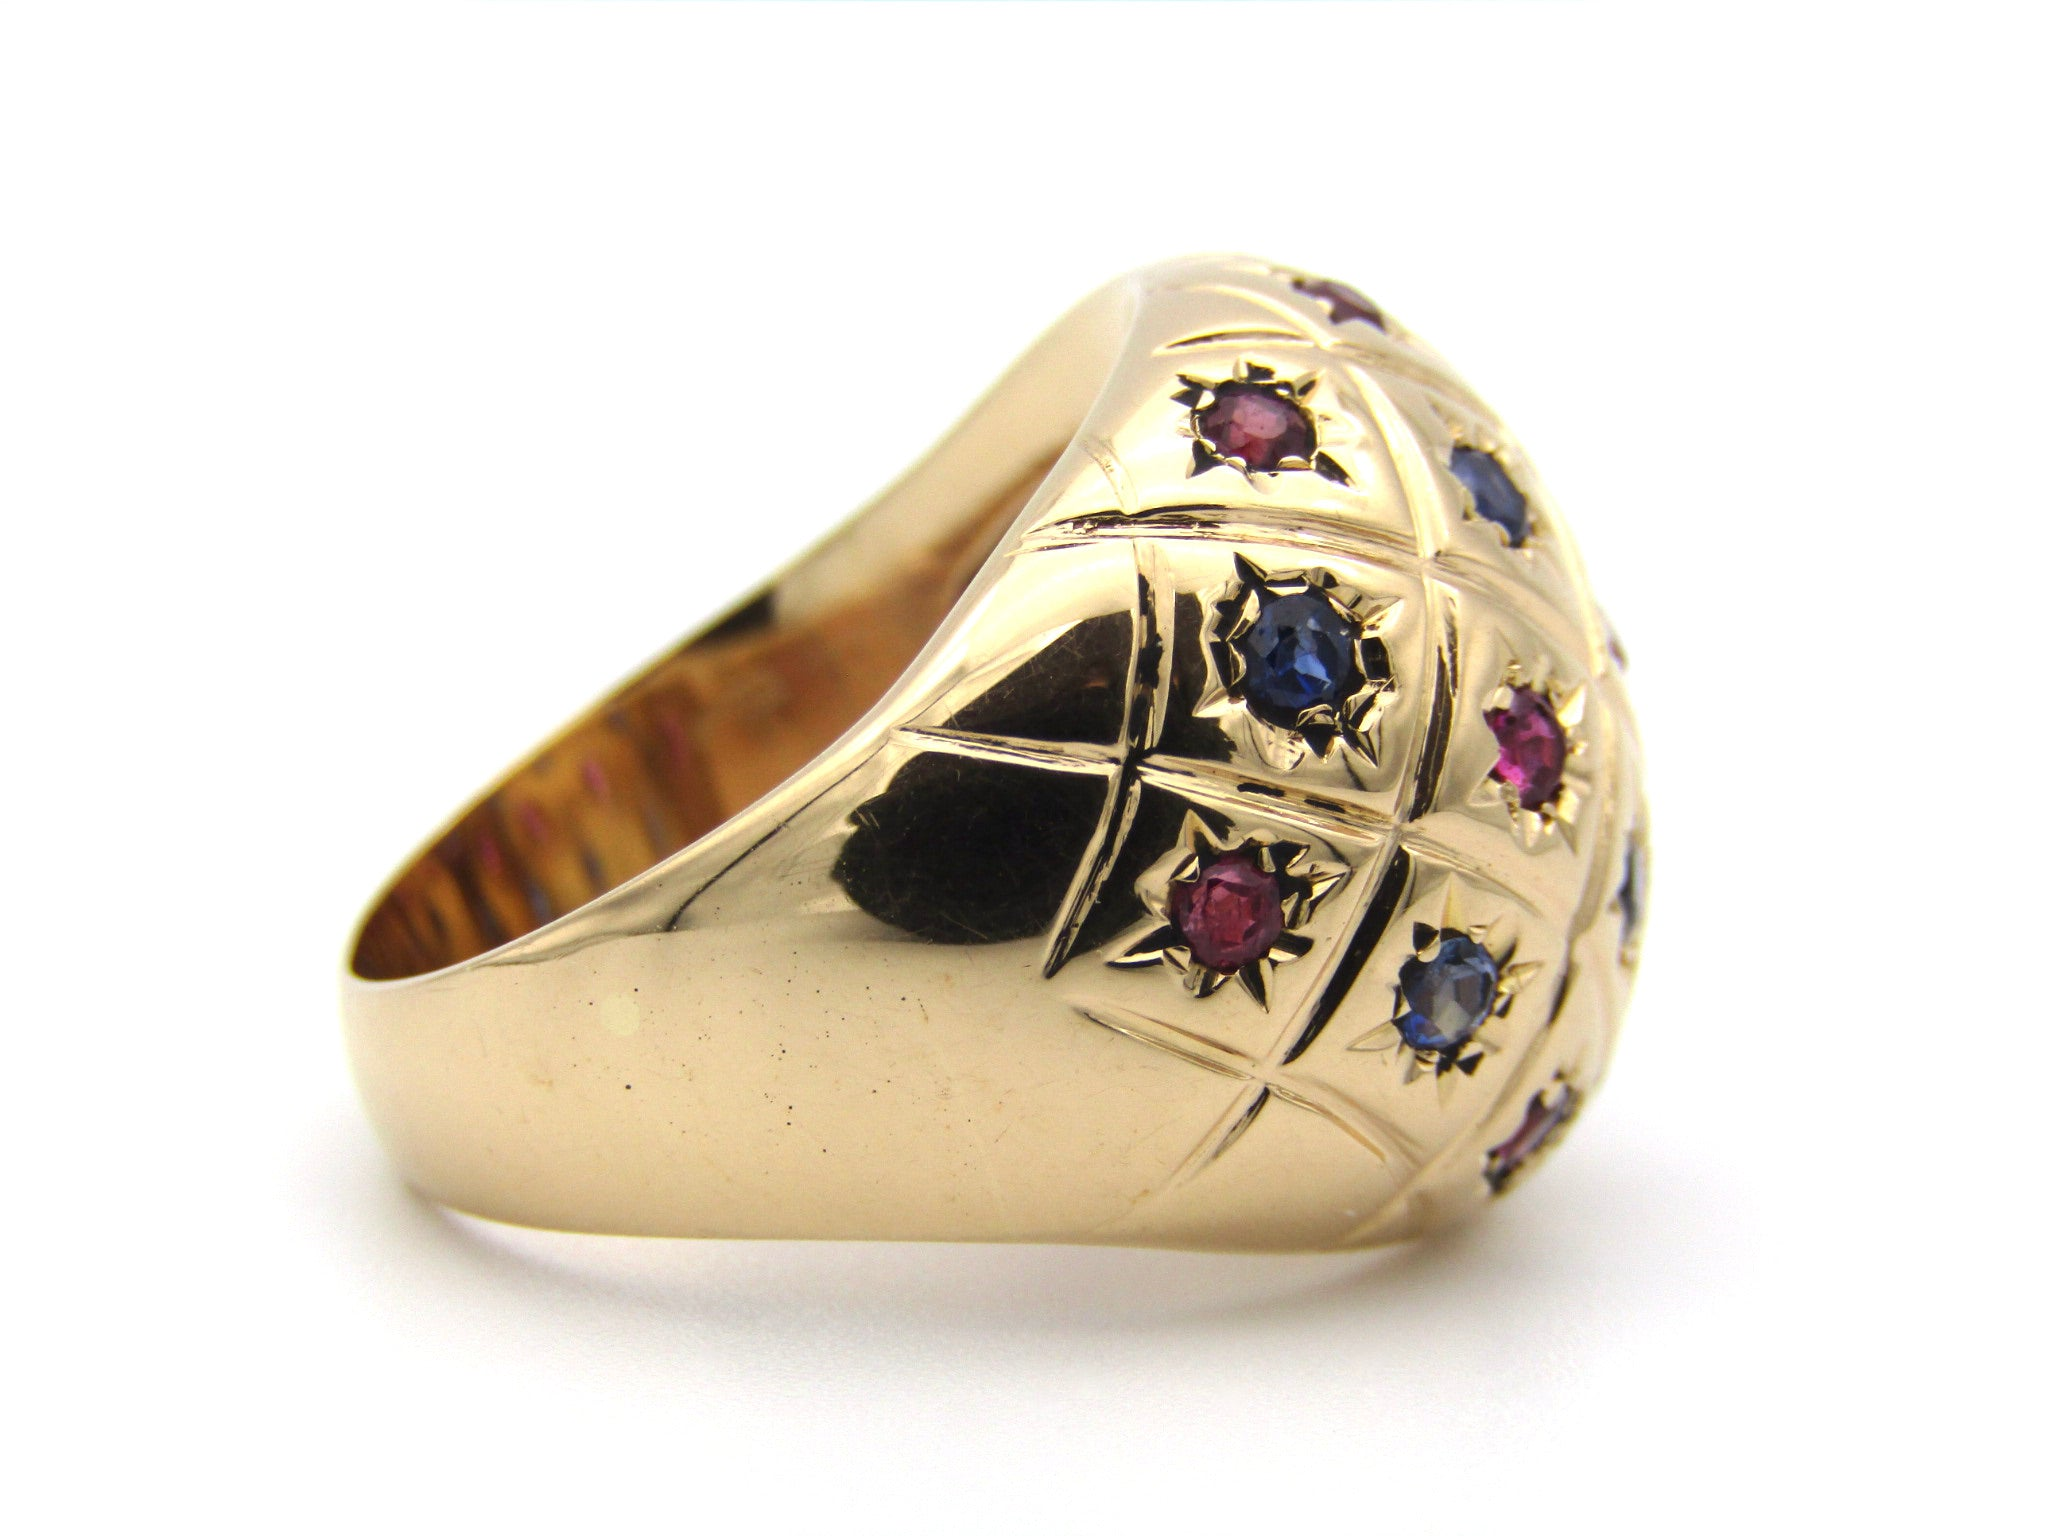 18K gold ruby and sapphire dome ring.